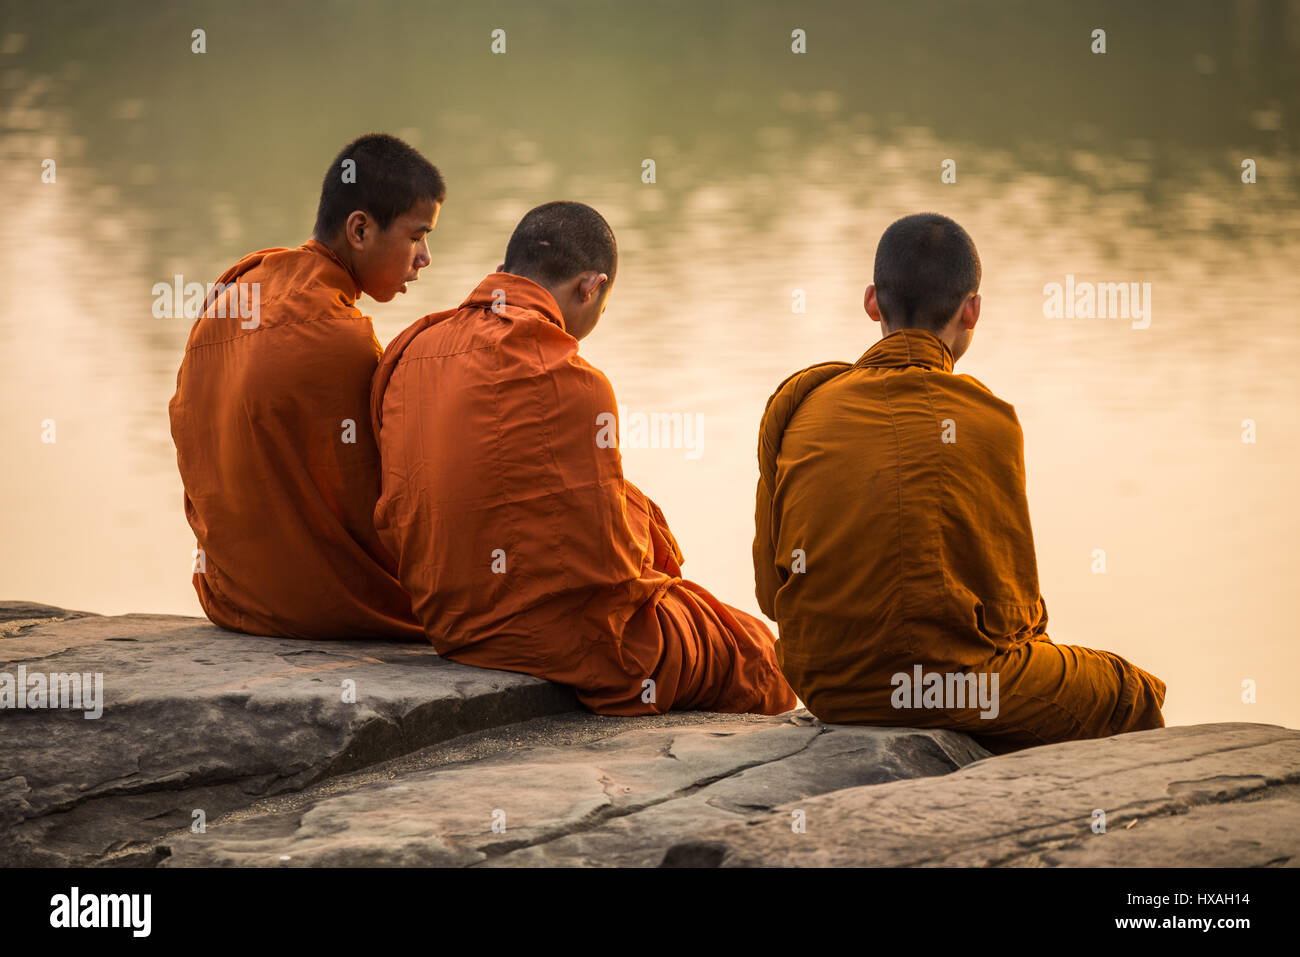 Monks in the Angkor Wat, Siem Reap, Cambodia, Asia. - Stock Image